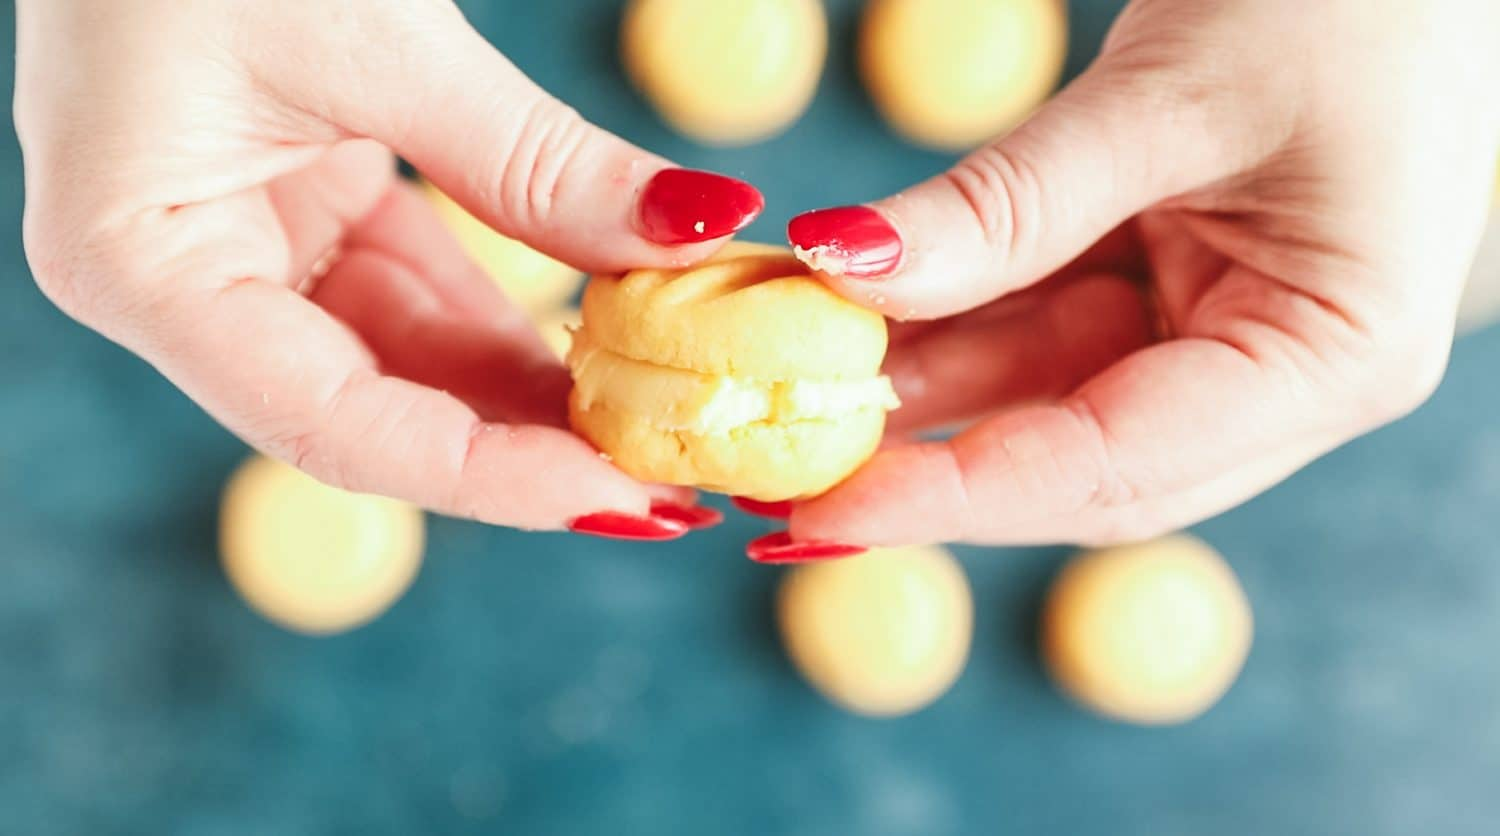 Hands sandwiching together two halves of biscuit that have been spread with buttercream.